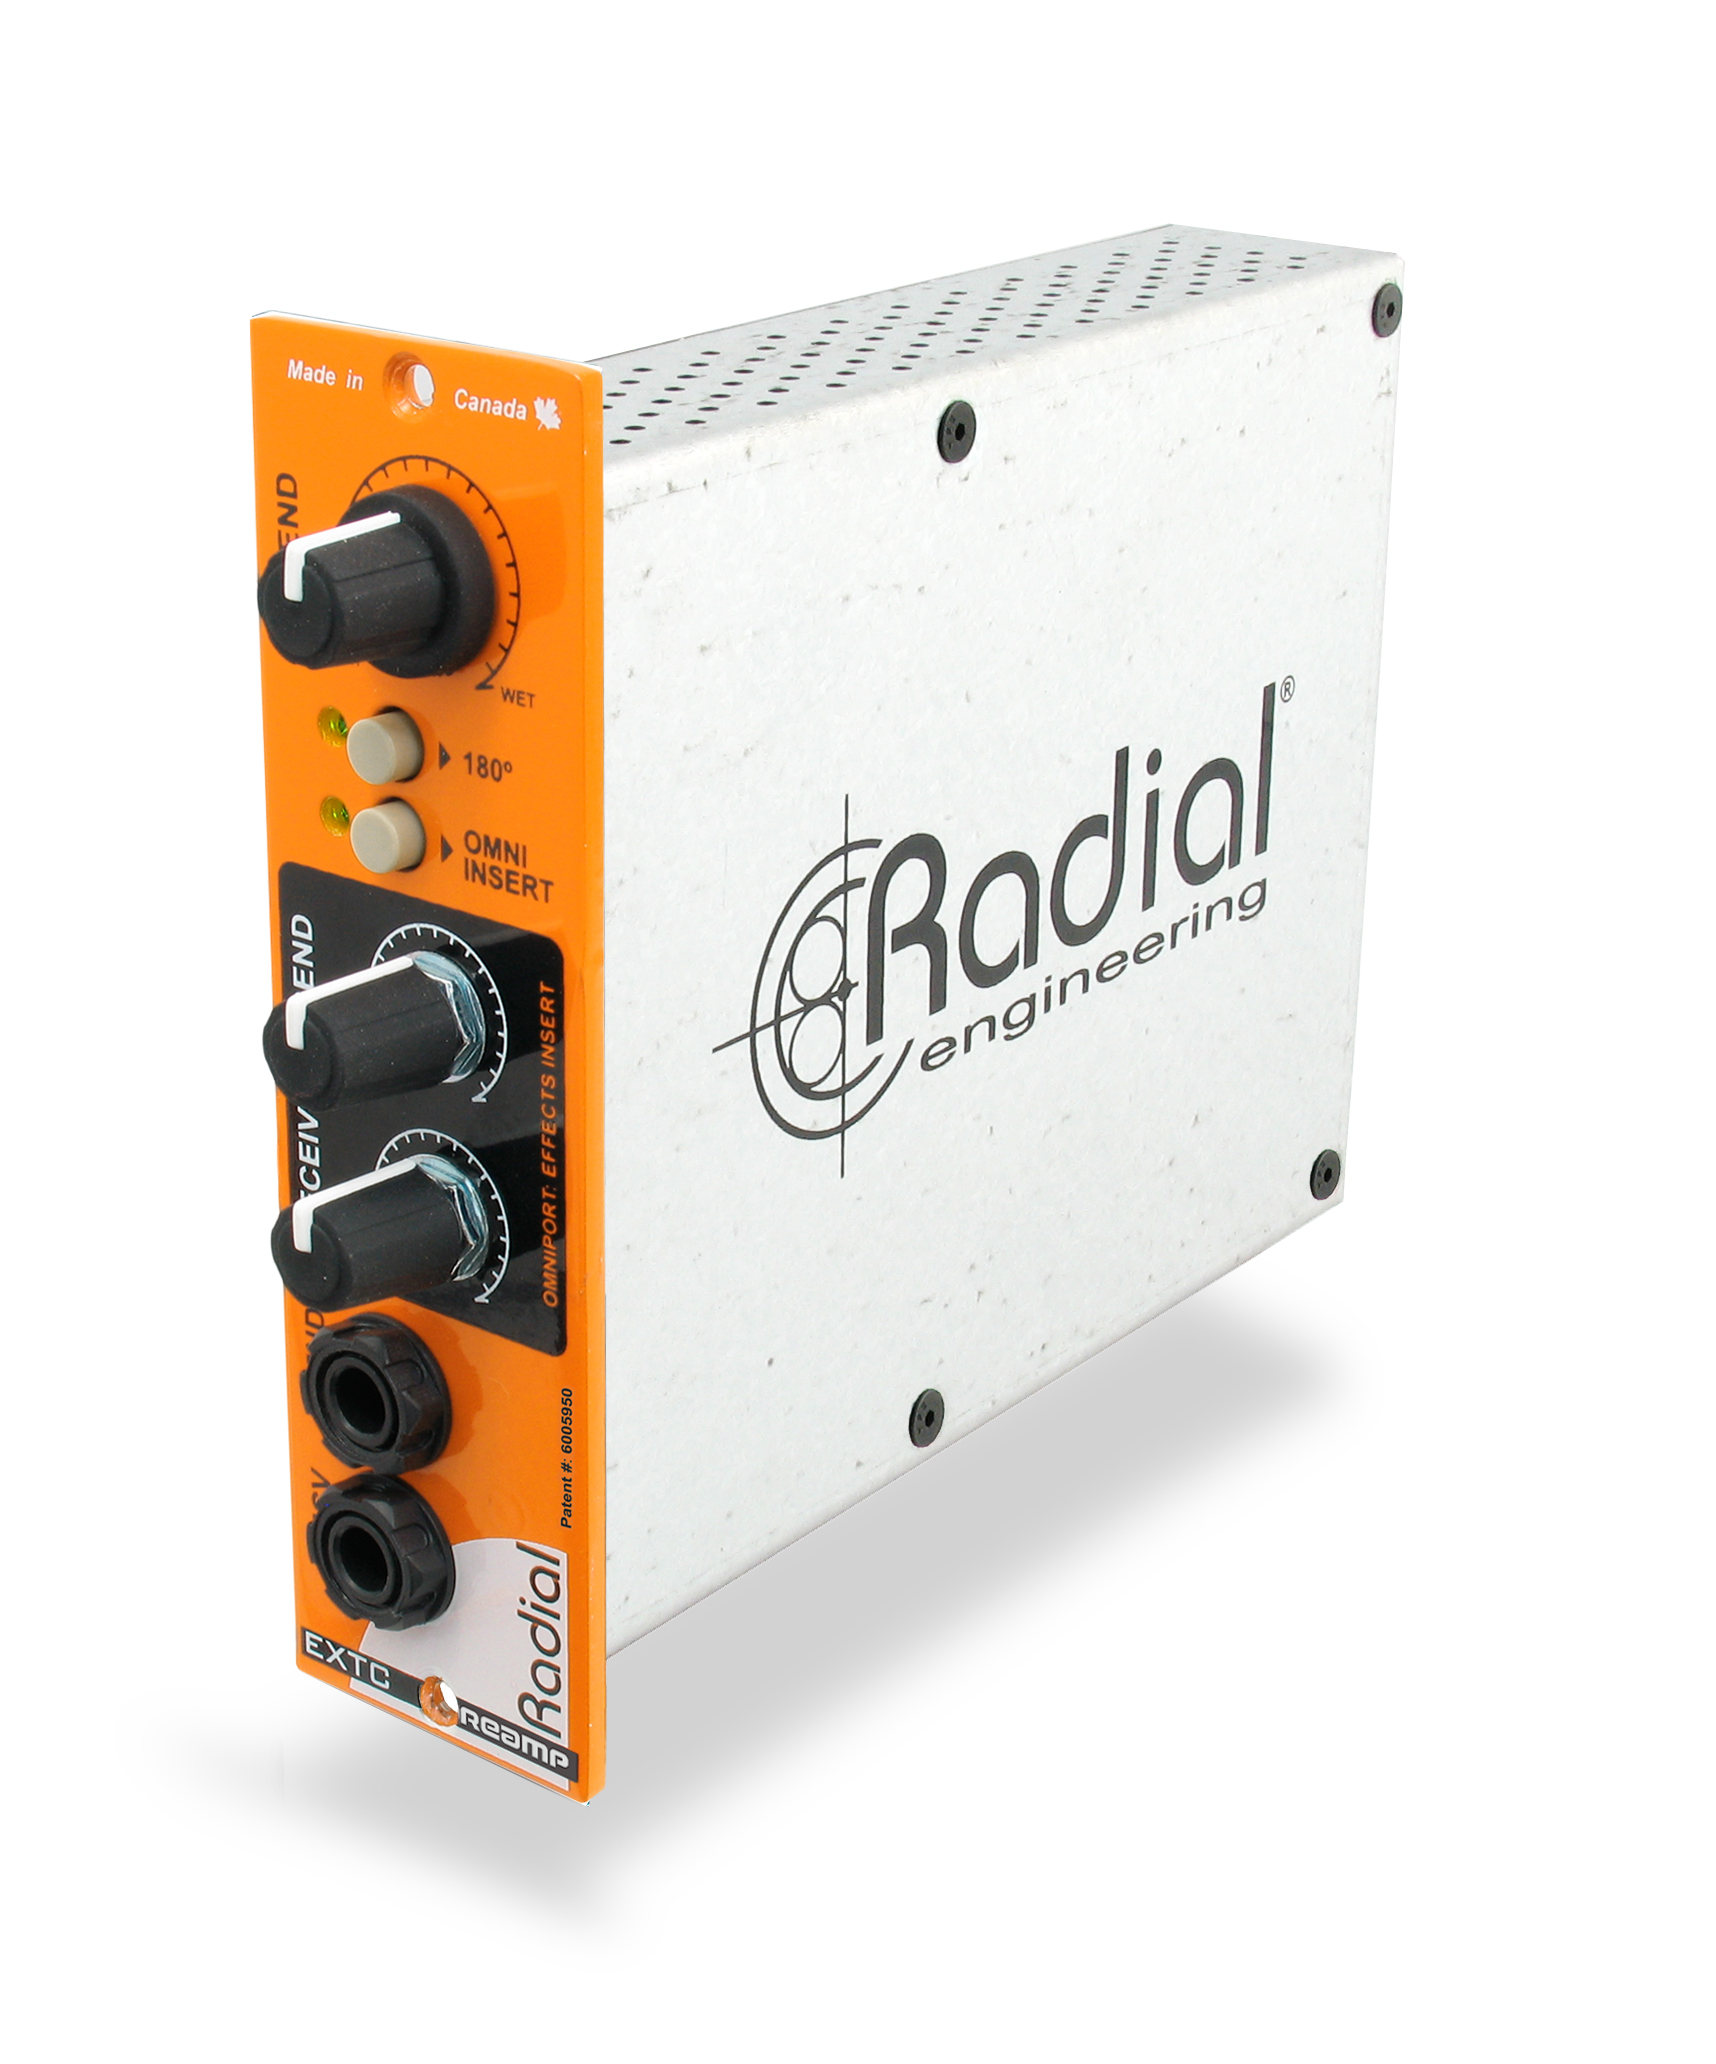 Radial Extc 500 Guitar Effects Interface